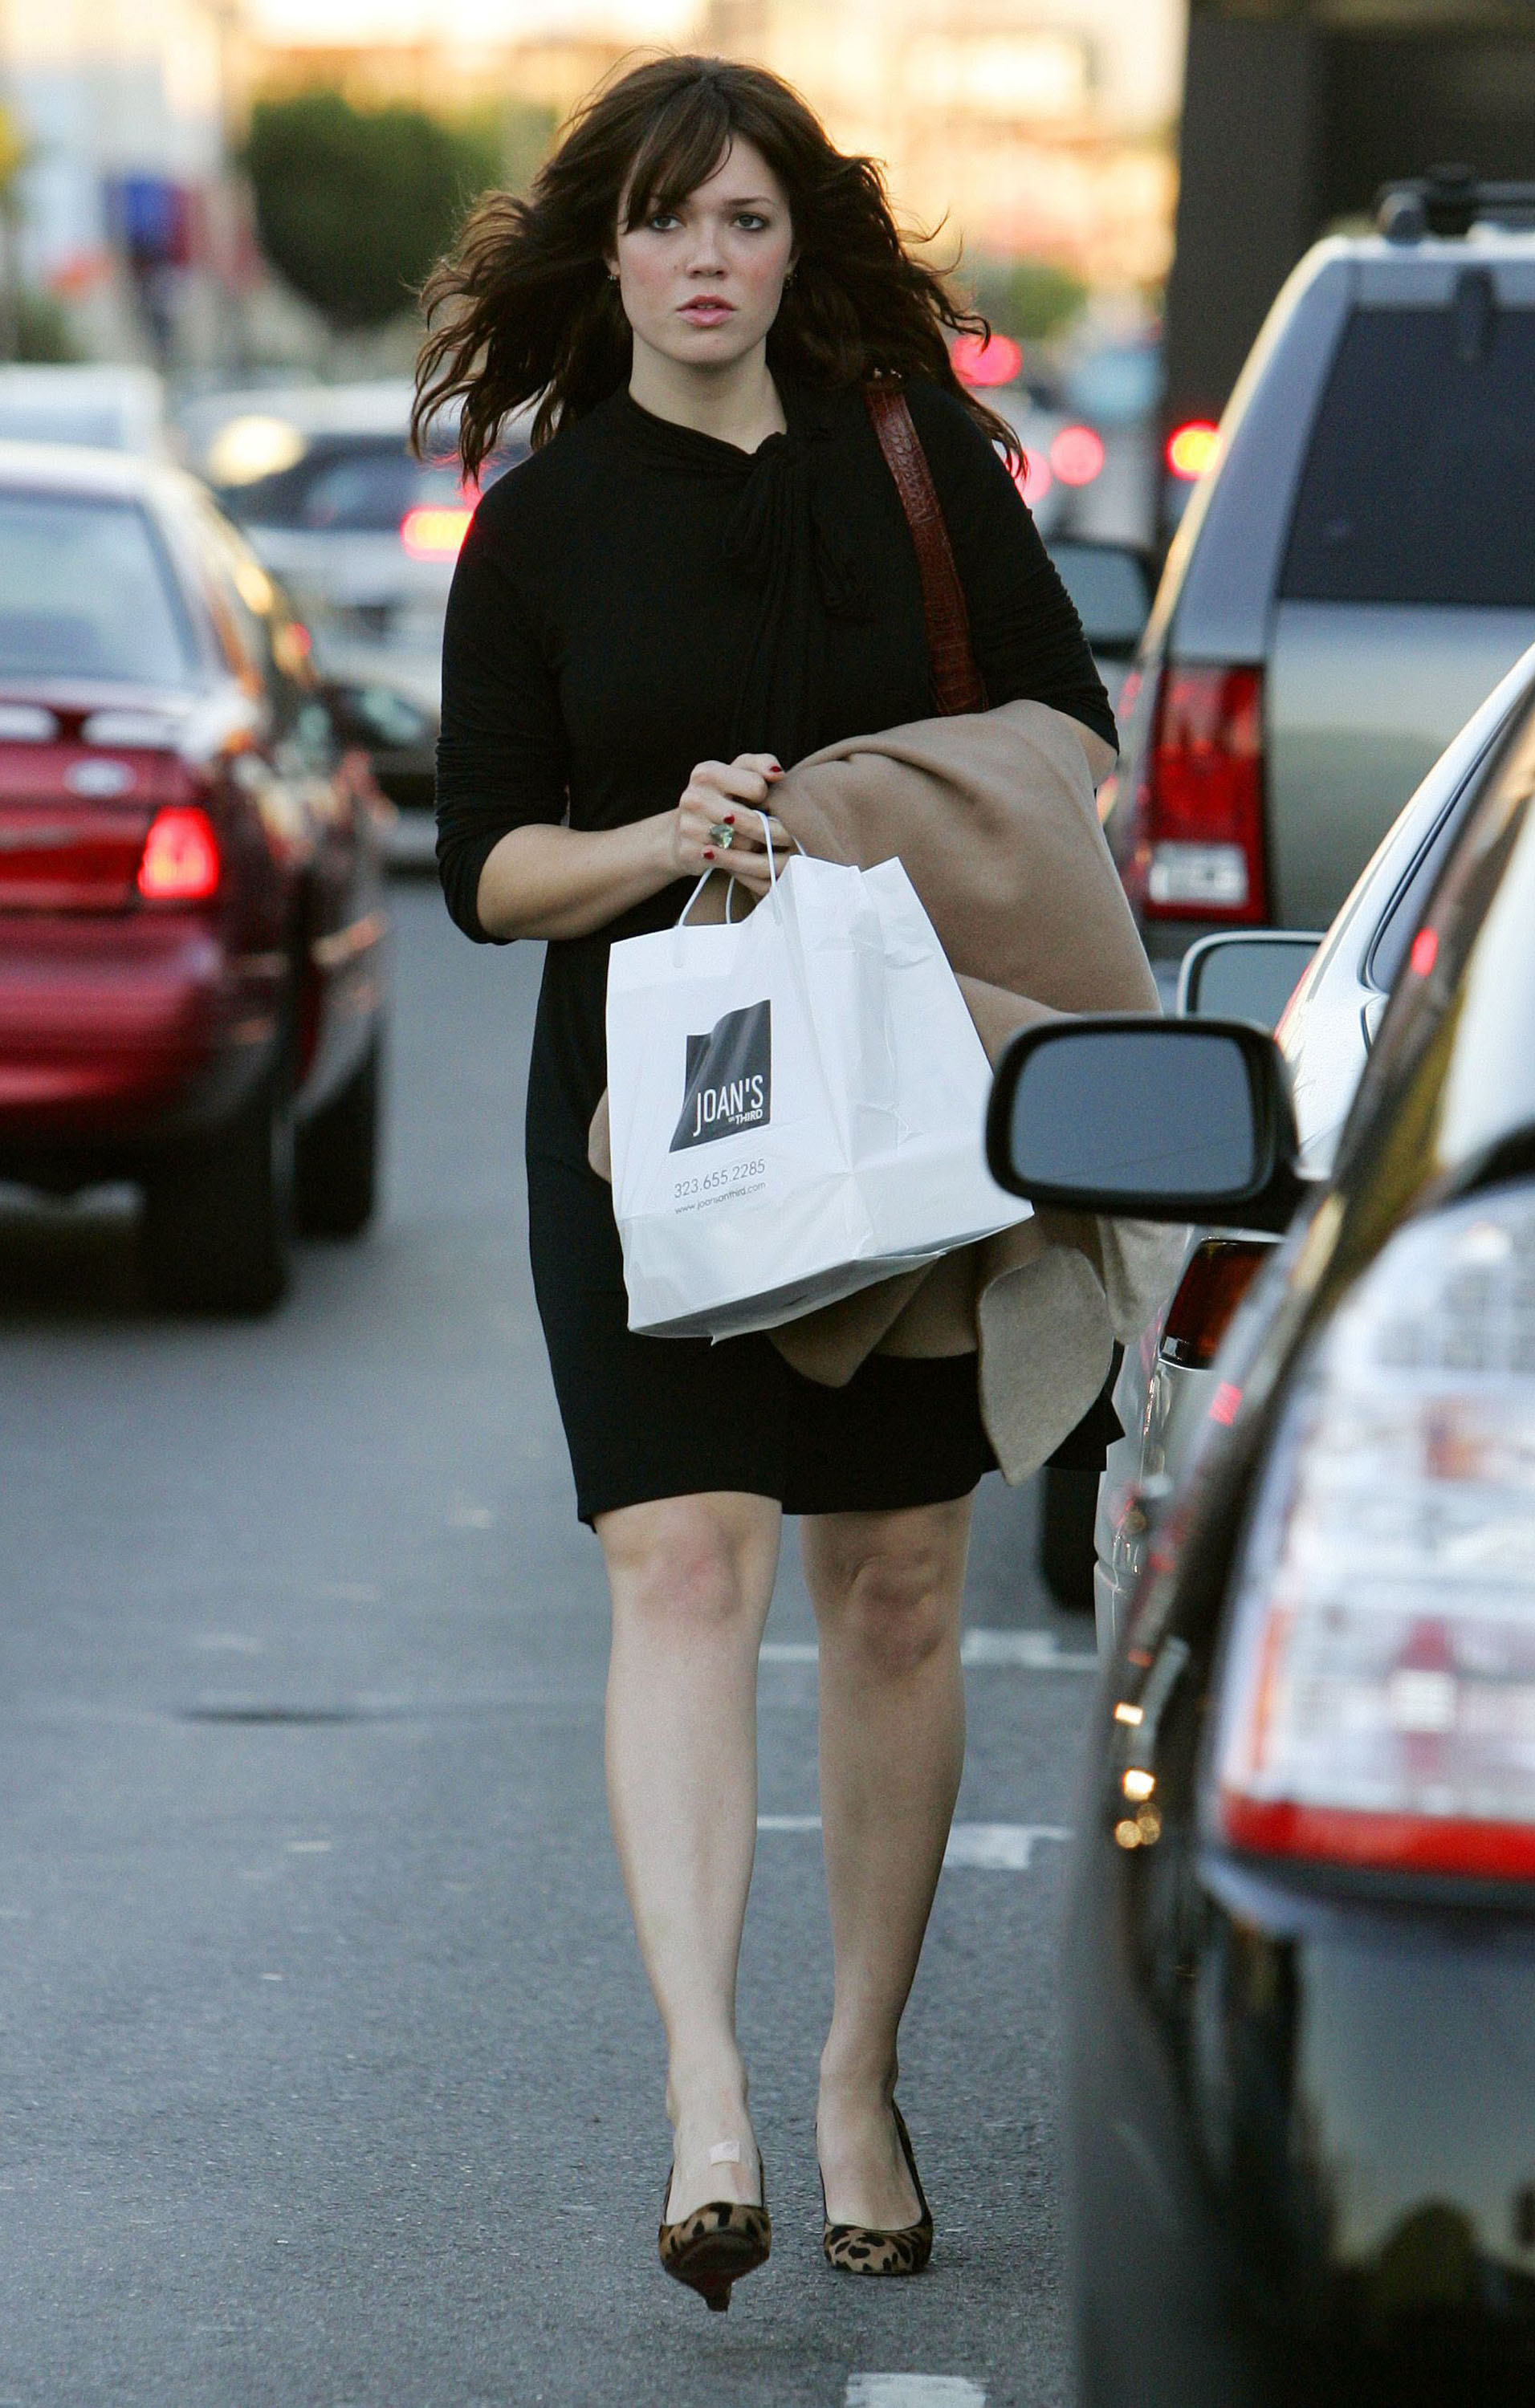 67229_celeb-city.eu_Mandy_Moore_out_and_about_in_West_Hollywood_10.12.2007_05_122_776lo.jpg